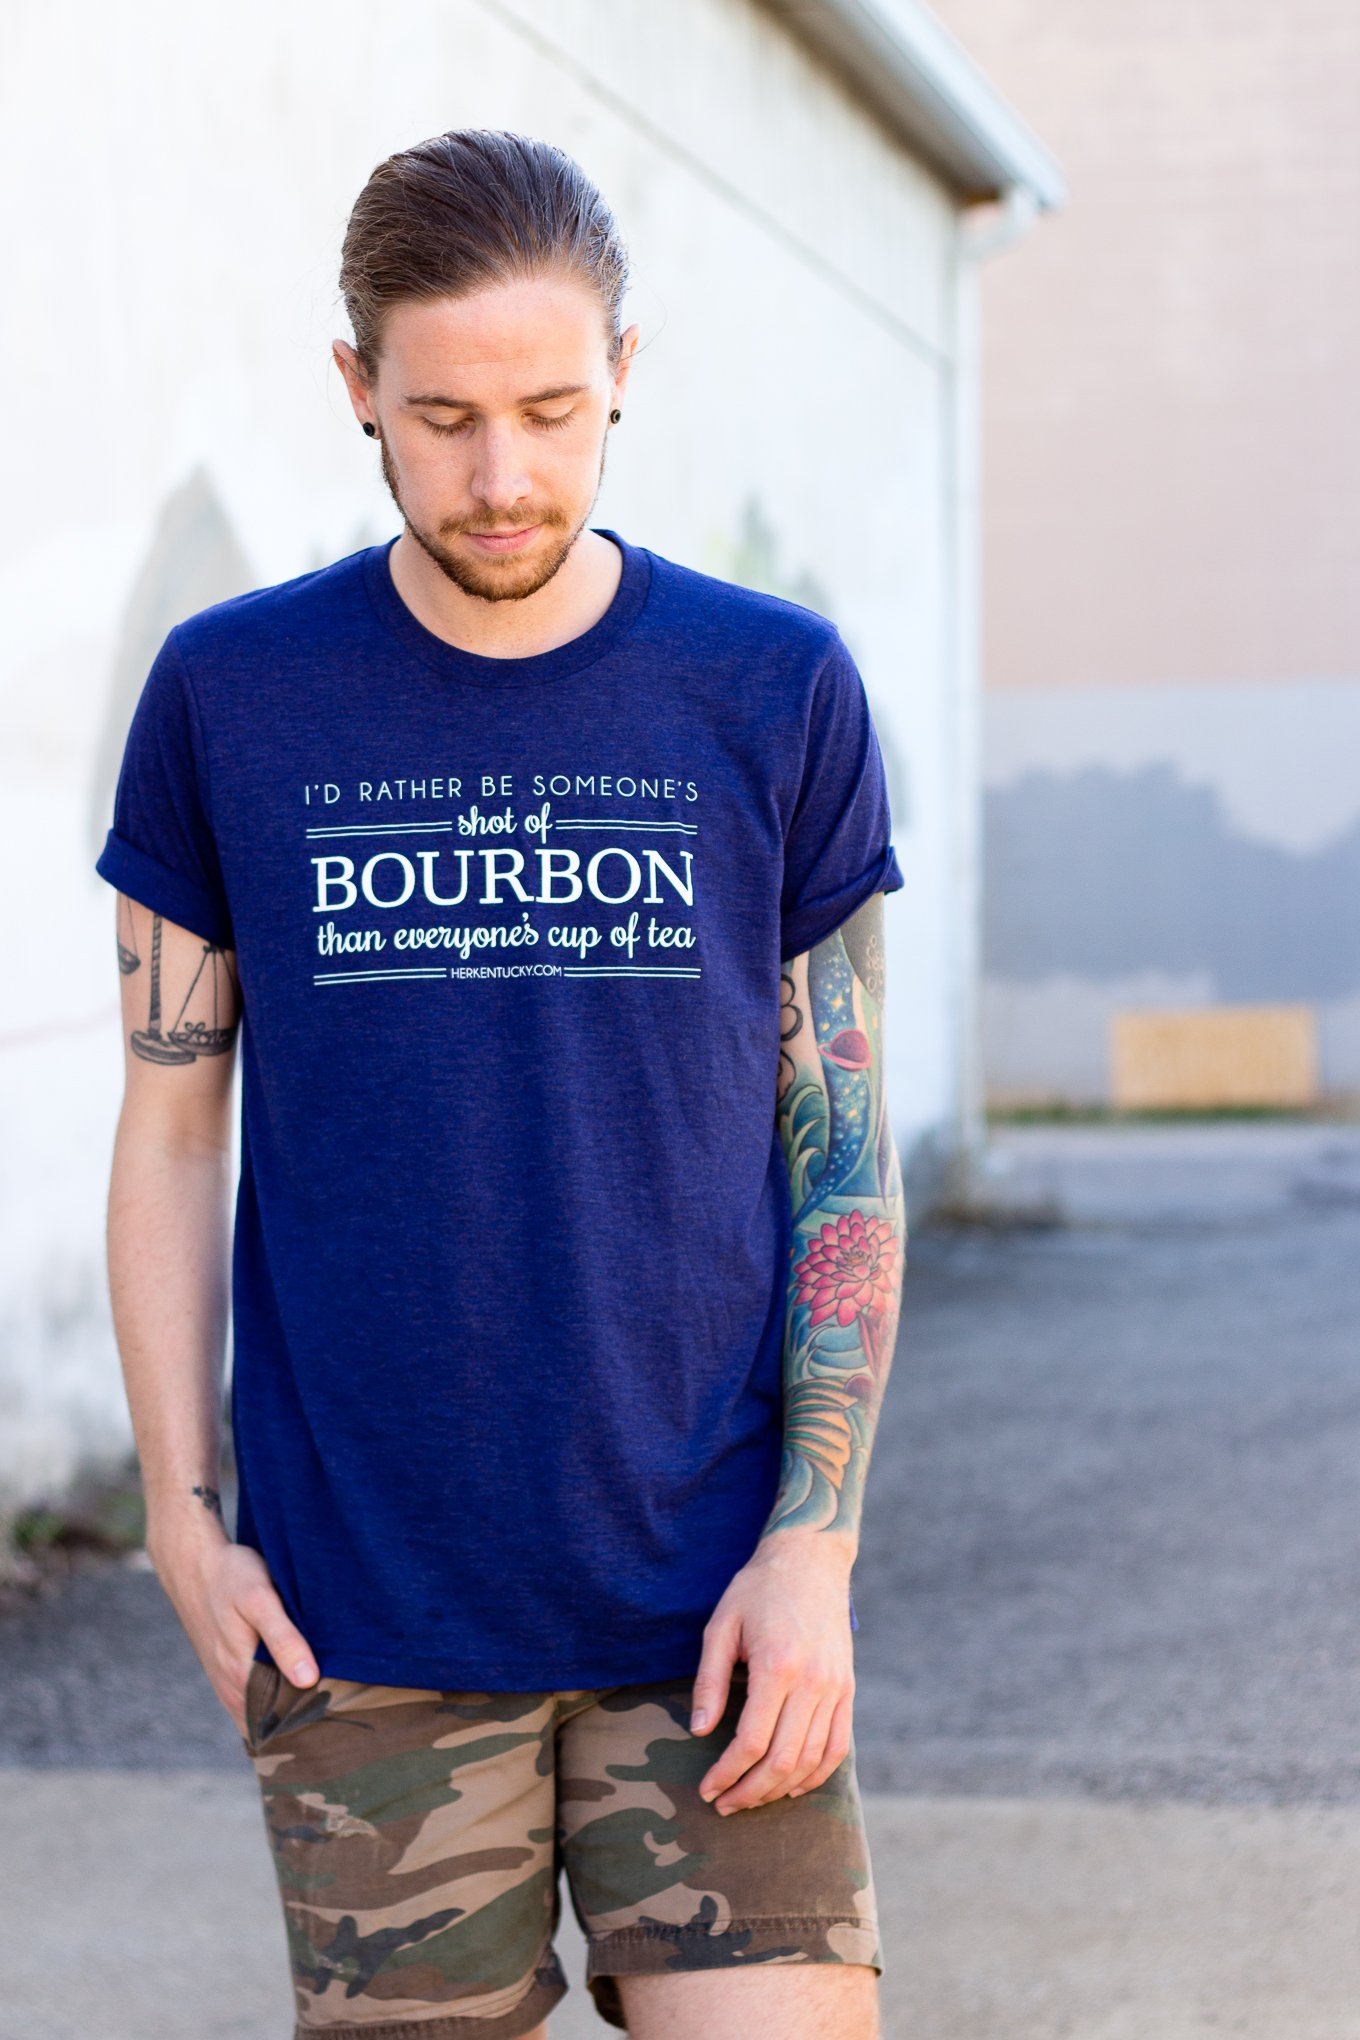 Her Kentucky Shot of Bourbon T-Shirt on The Kentucky Gent